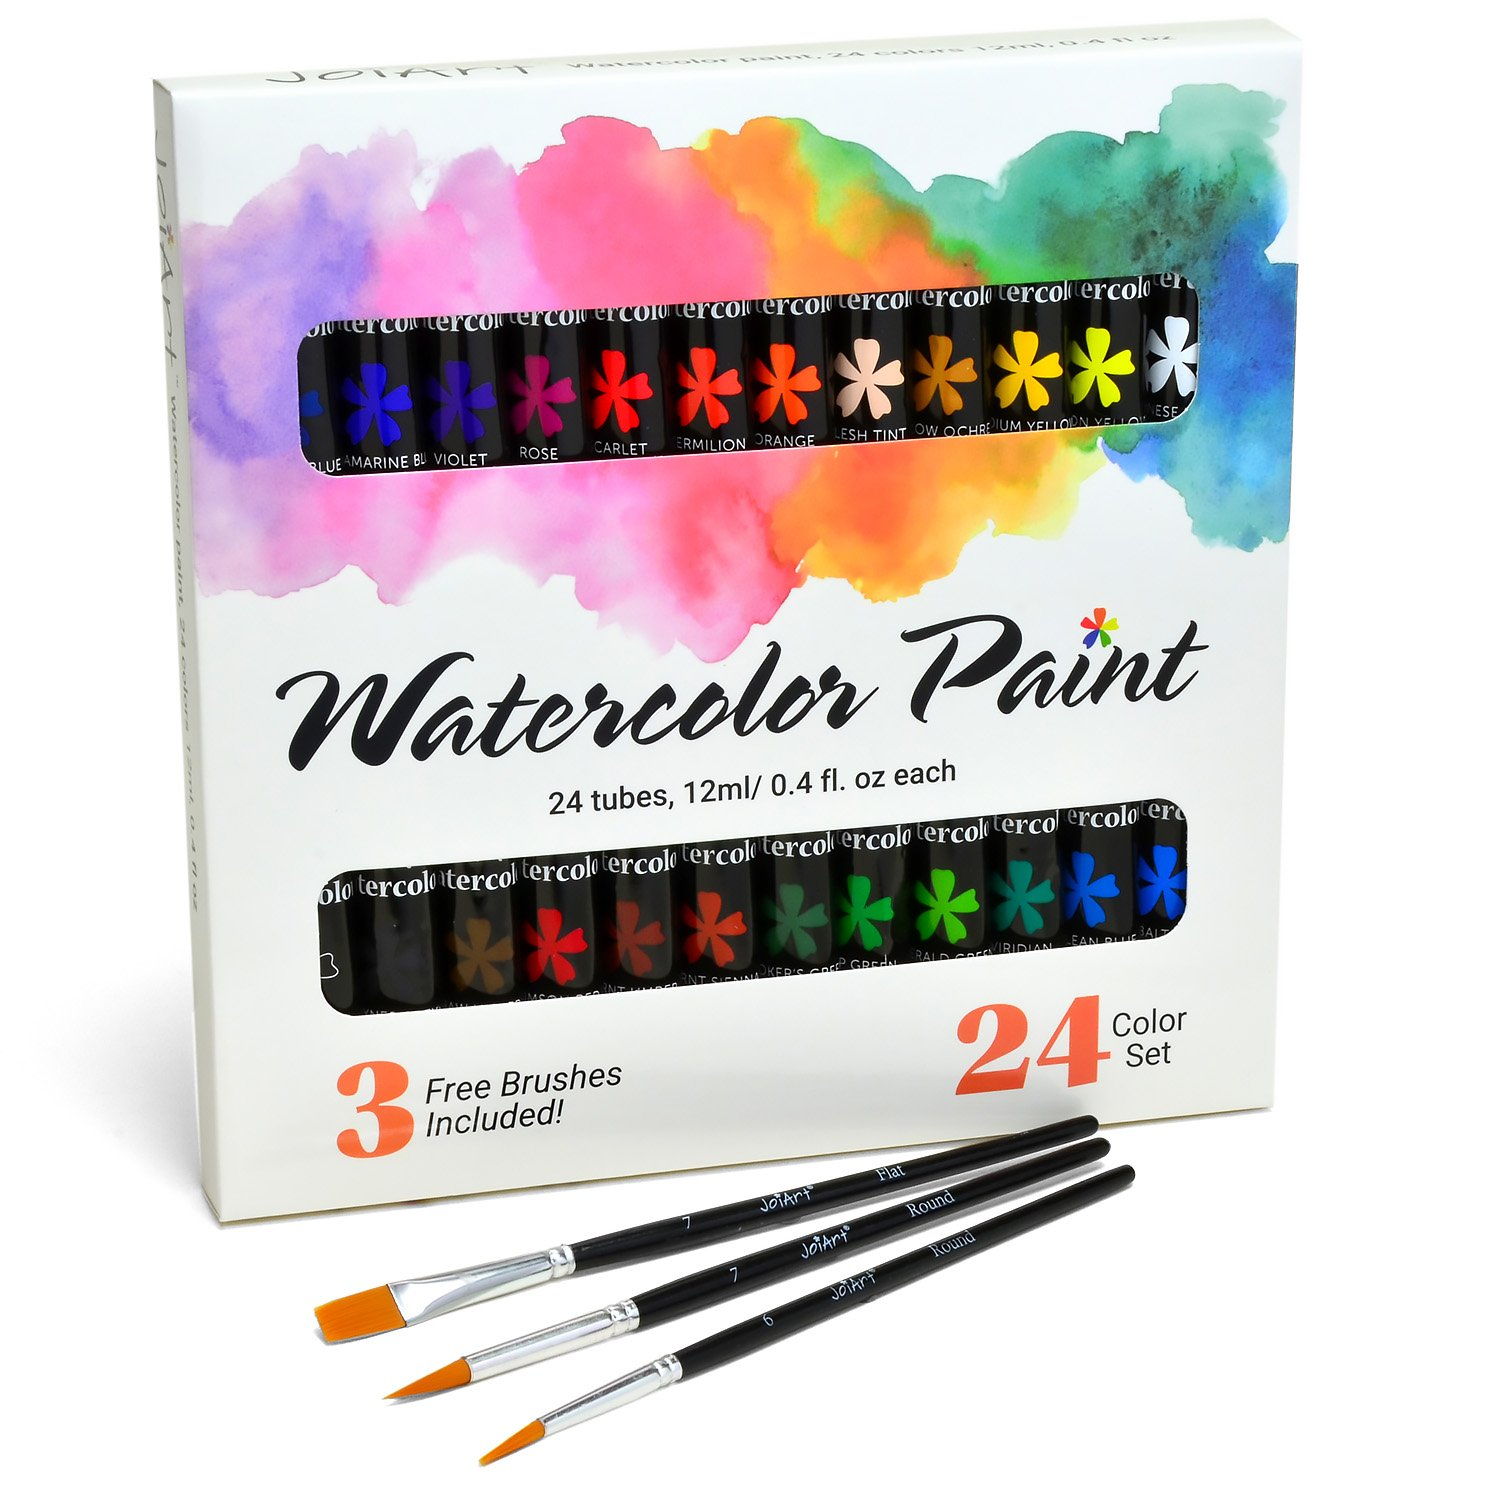 Watercolor Paint Set by JoiArt Bright 24 Color Premium Painting Kit for Beginners, Students and Artists - Includes 3 Brushes 4336952864